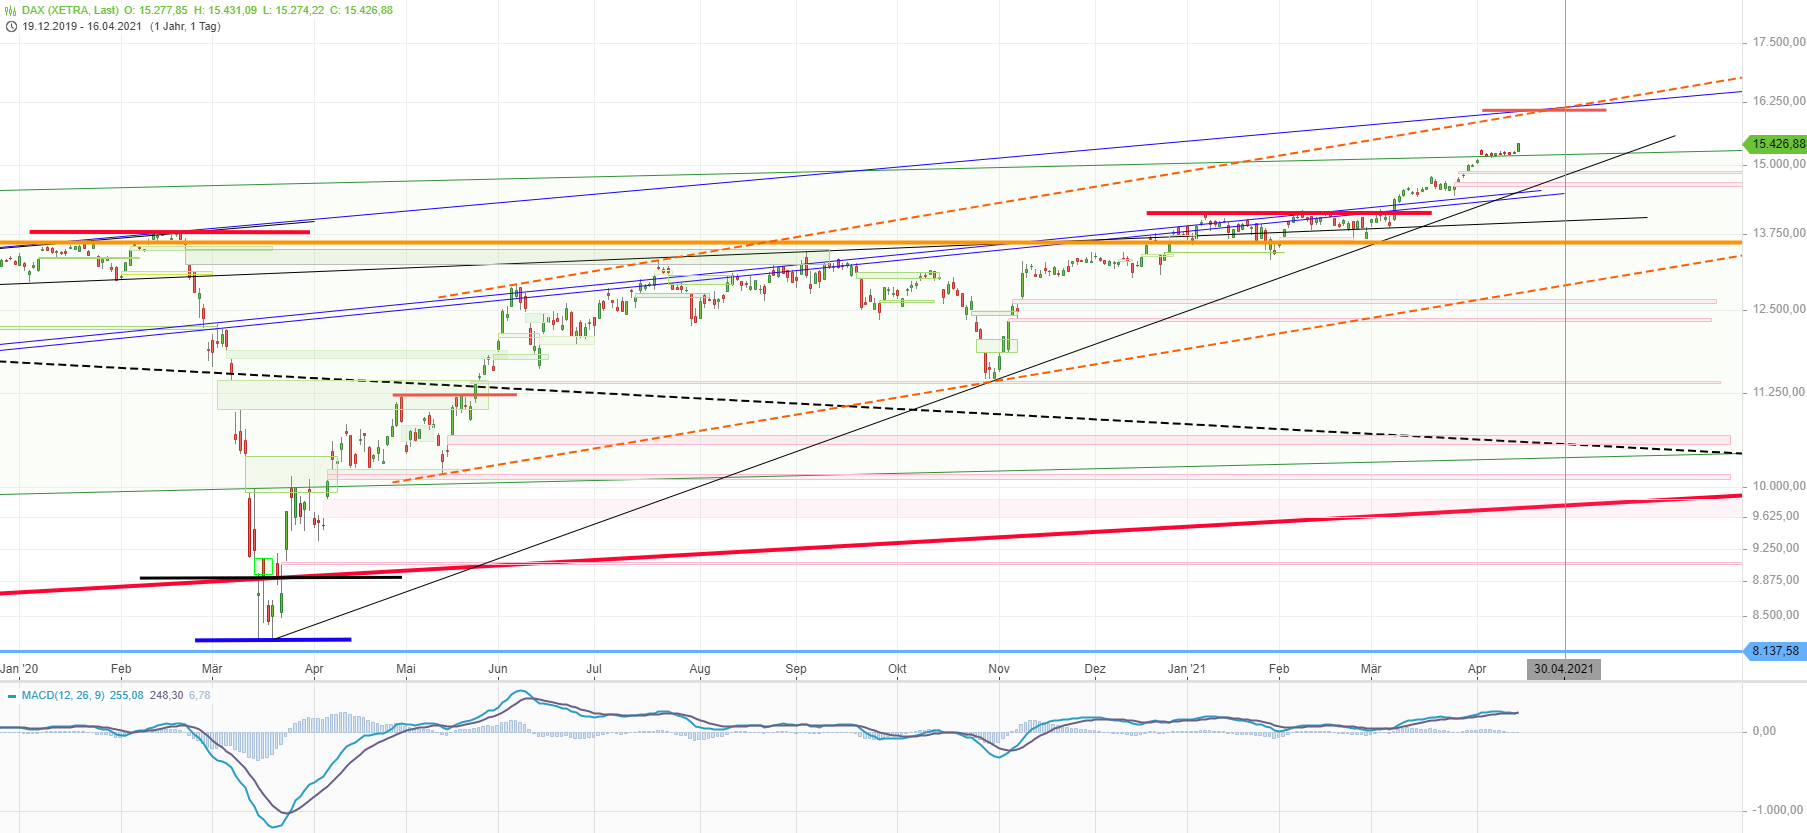 dax_2021-04-16_1440h.png